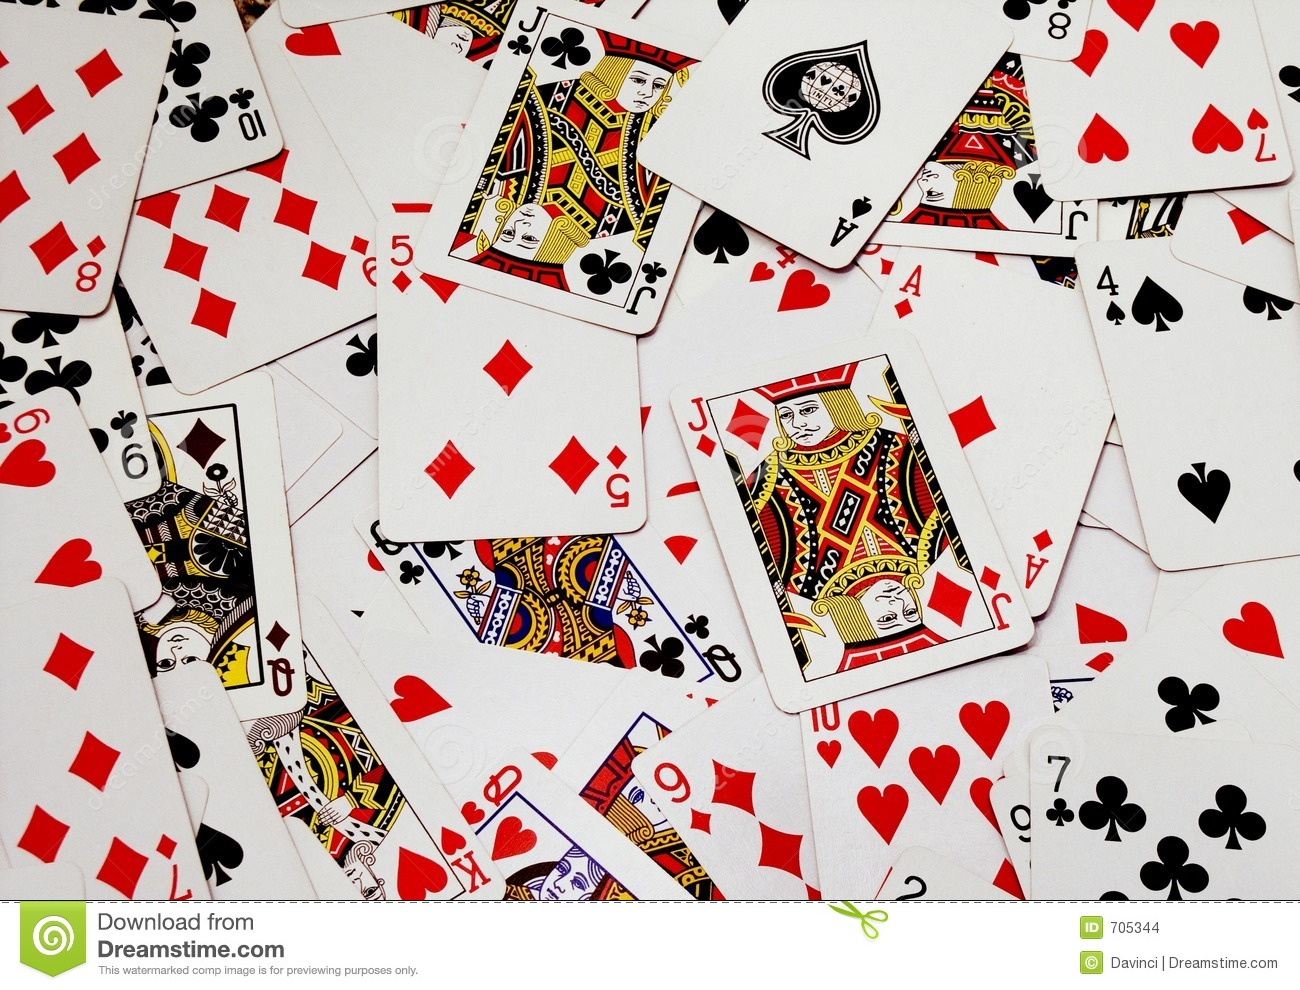 how to play playing cards in hindi